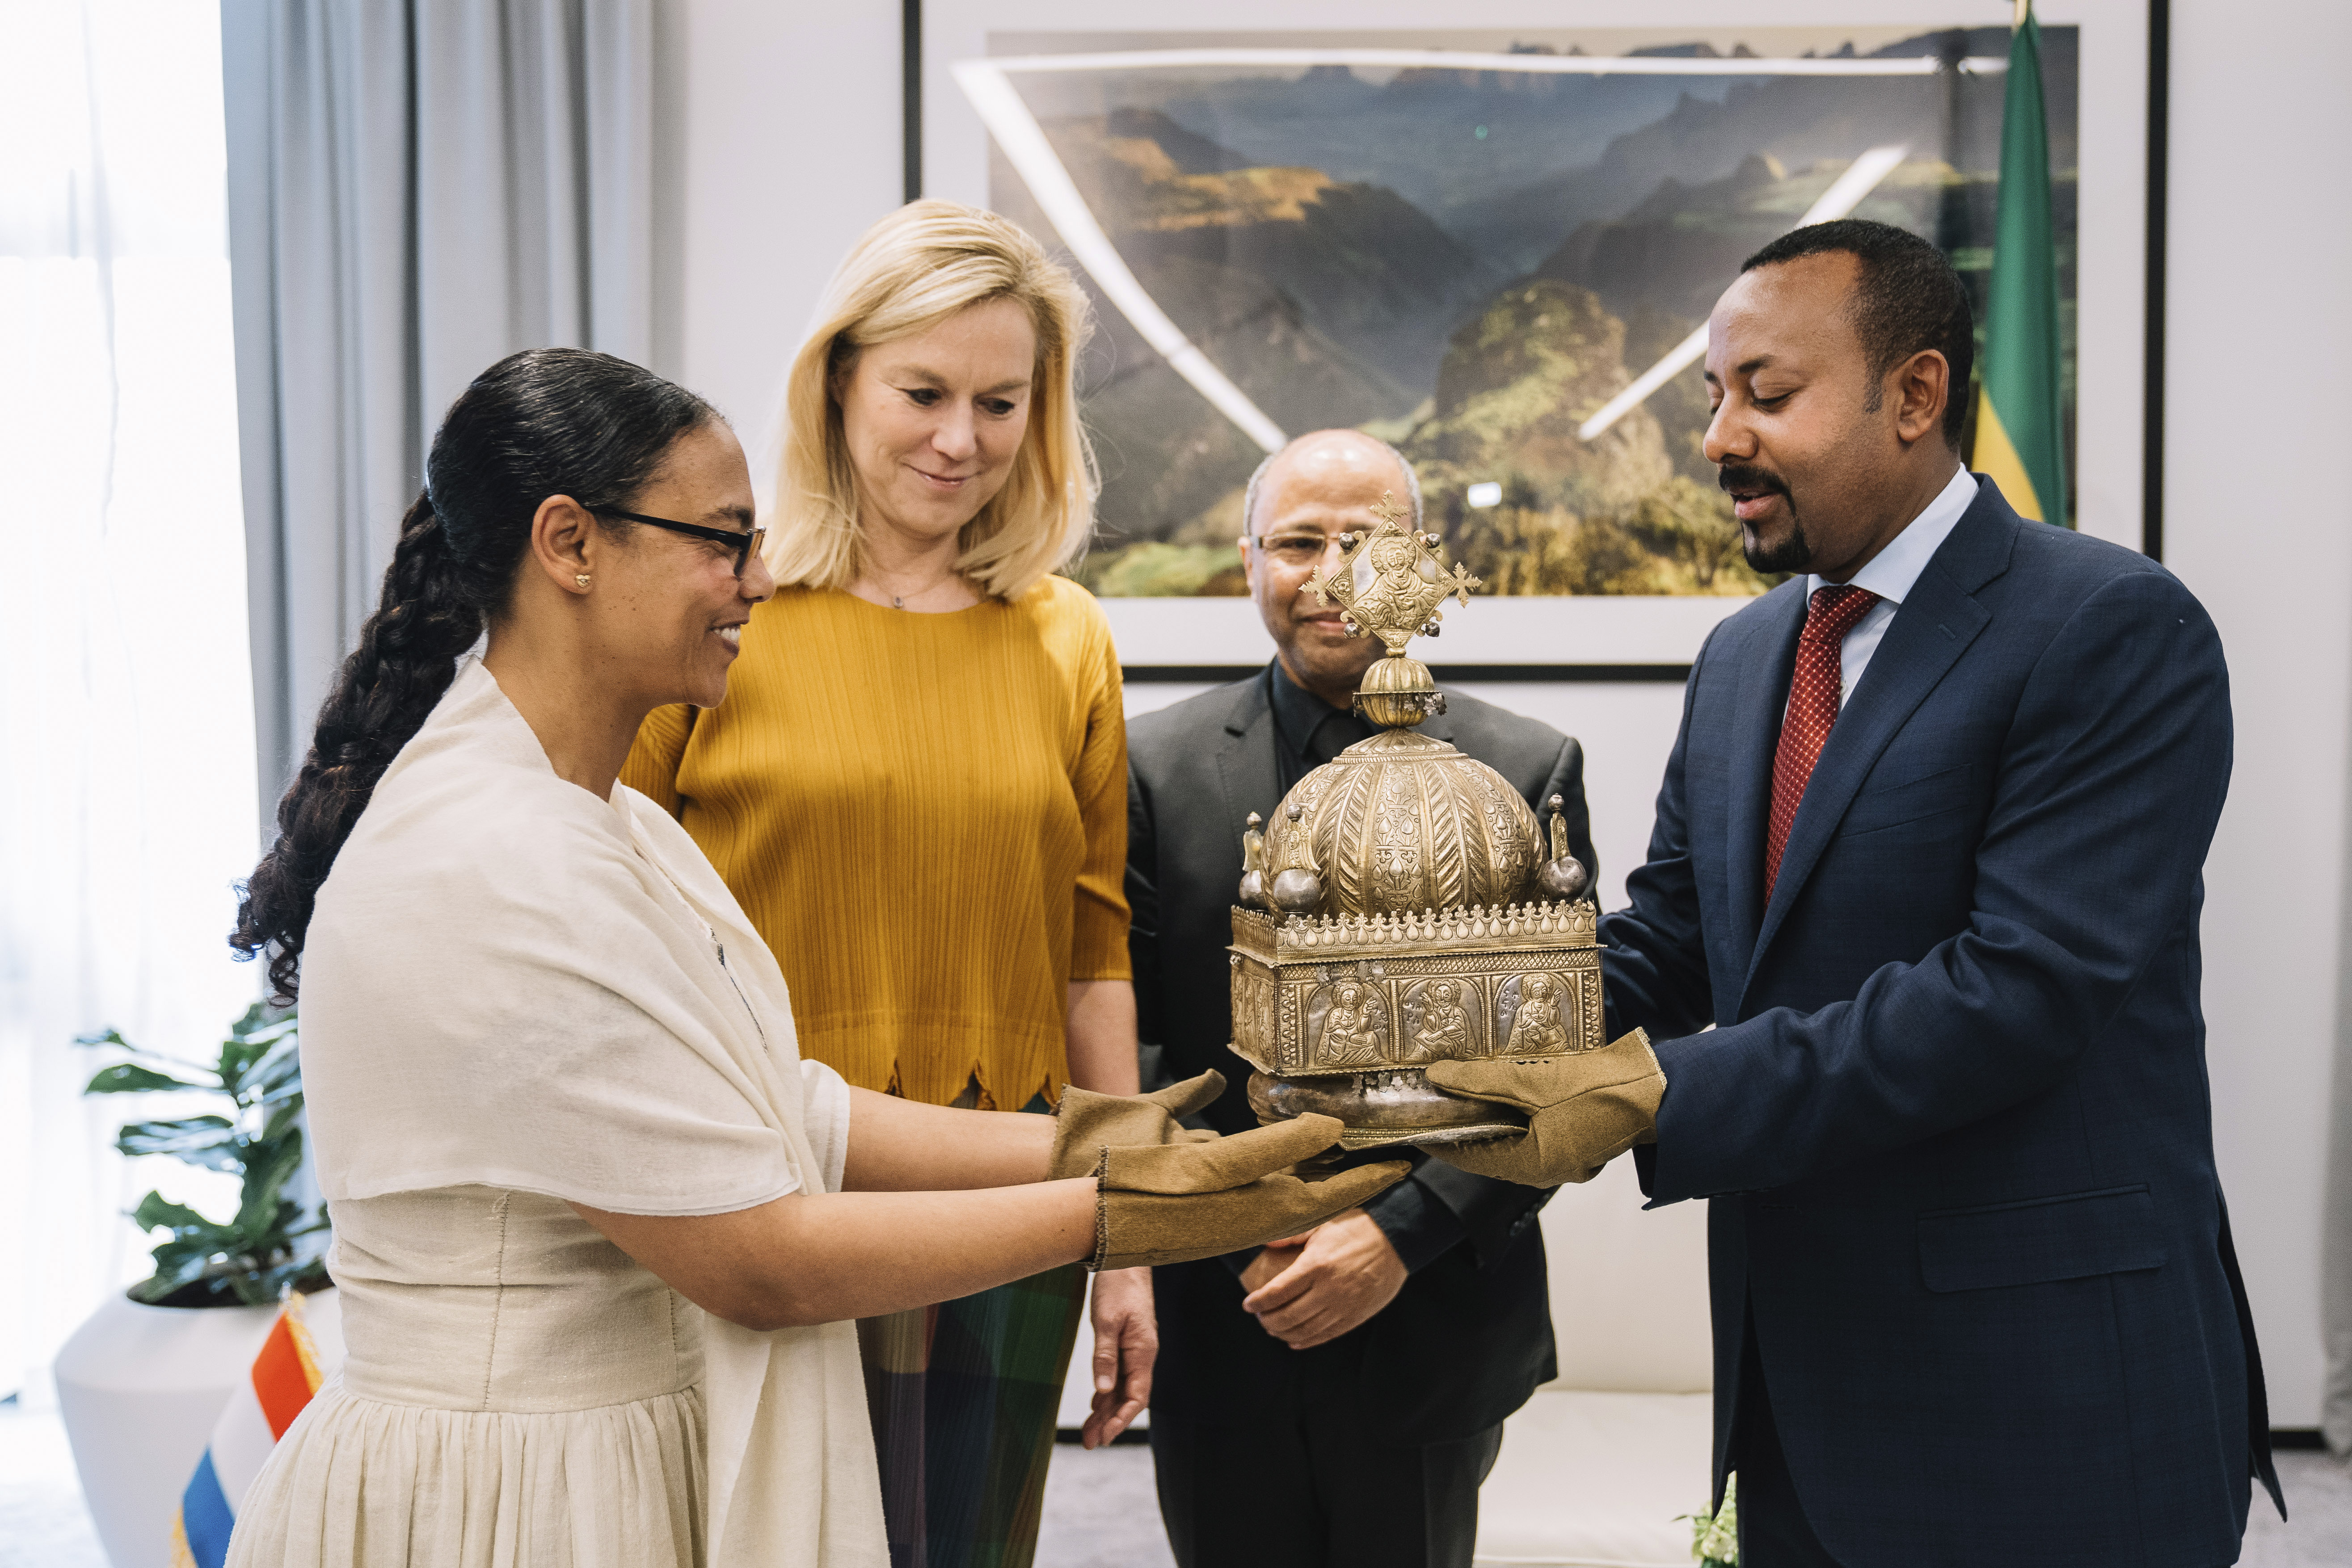 How a political refugee found a lost 18th century Ethiopian bronze crown and took it back home